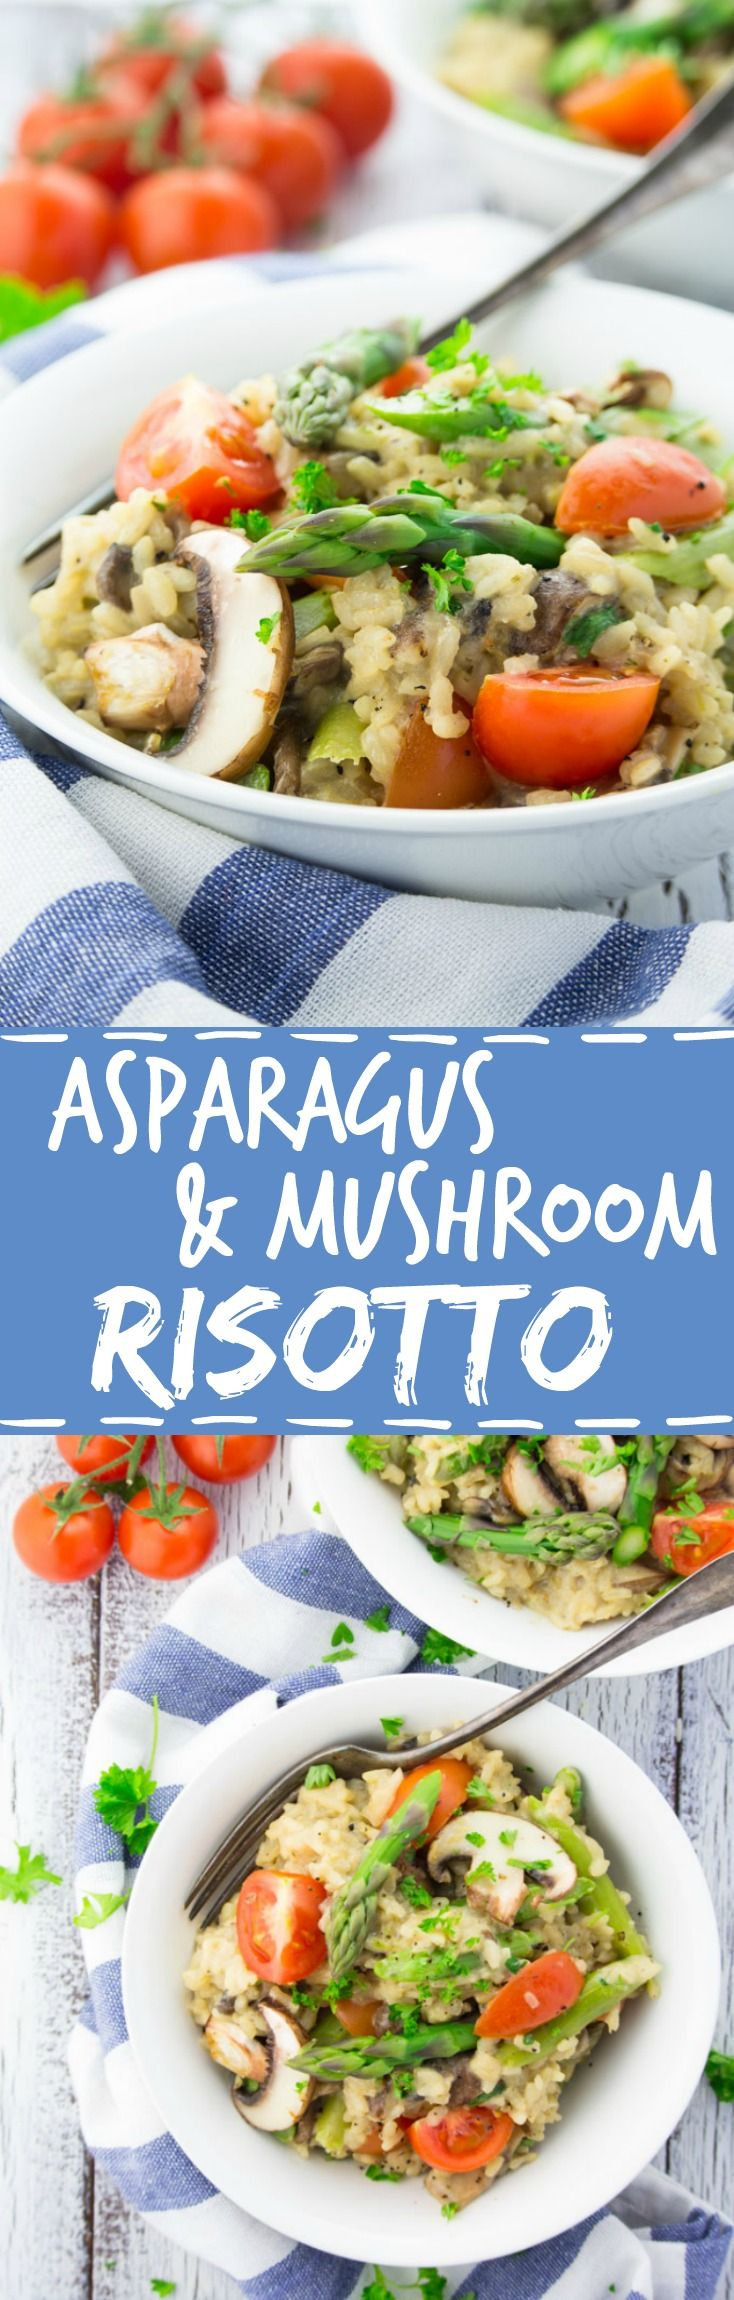 This vegan spring risotto with asparagus and mushrooms is super creamy, cheesy, wine-infused, and packed with flavor!